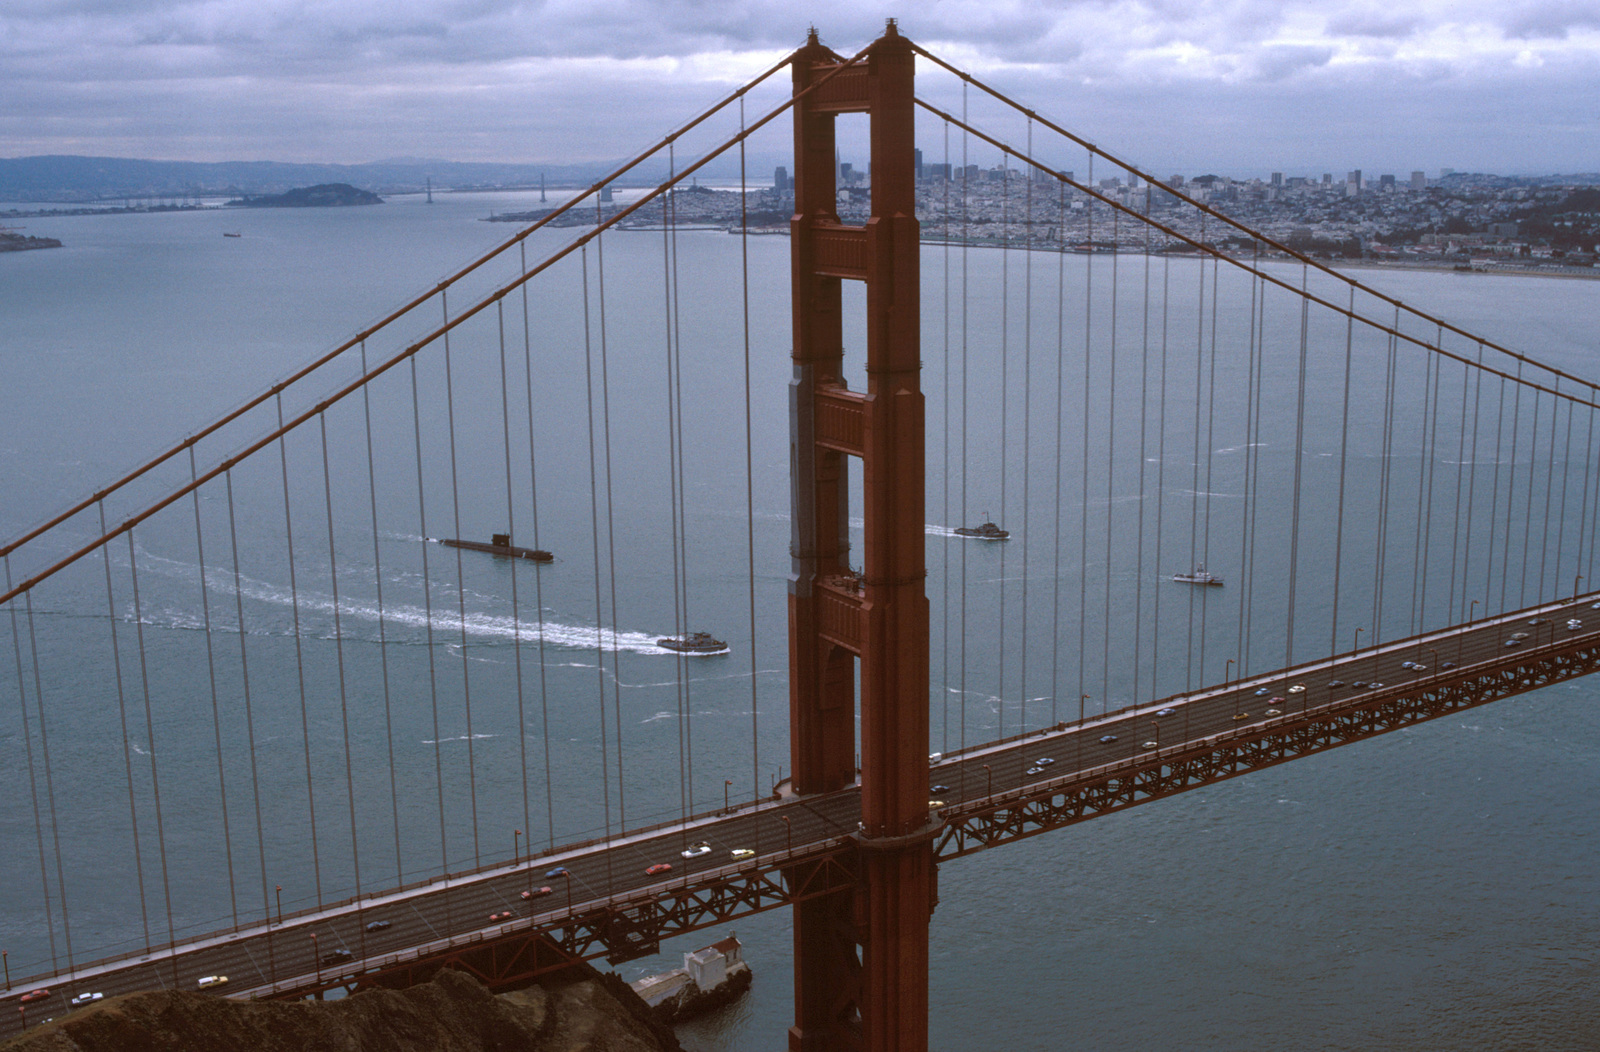 An aerial close-up view of the Golden Gate Bridge as the nuclear-powered attack submarine ex-USS NAUTILUS (SSN 571) approaches. The NAUTILUS is being towed by the fleet tug USS QUAPAW (ATF 110), not visible, with an escort of two YTB 760 class large harbor tugs and a Coast Guard patrol boat. The submarine is en route to Groton, Connecticut